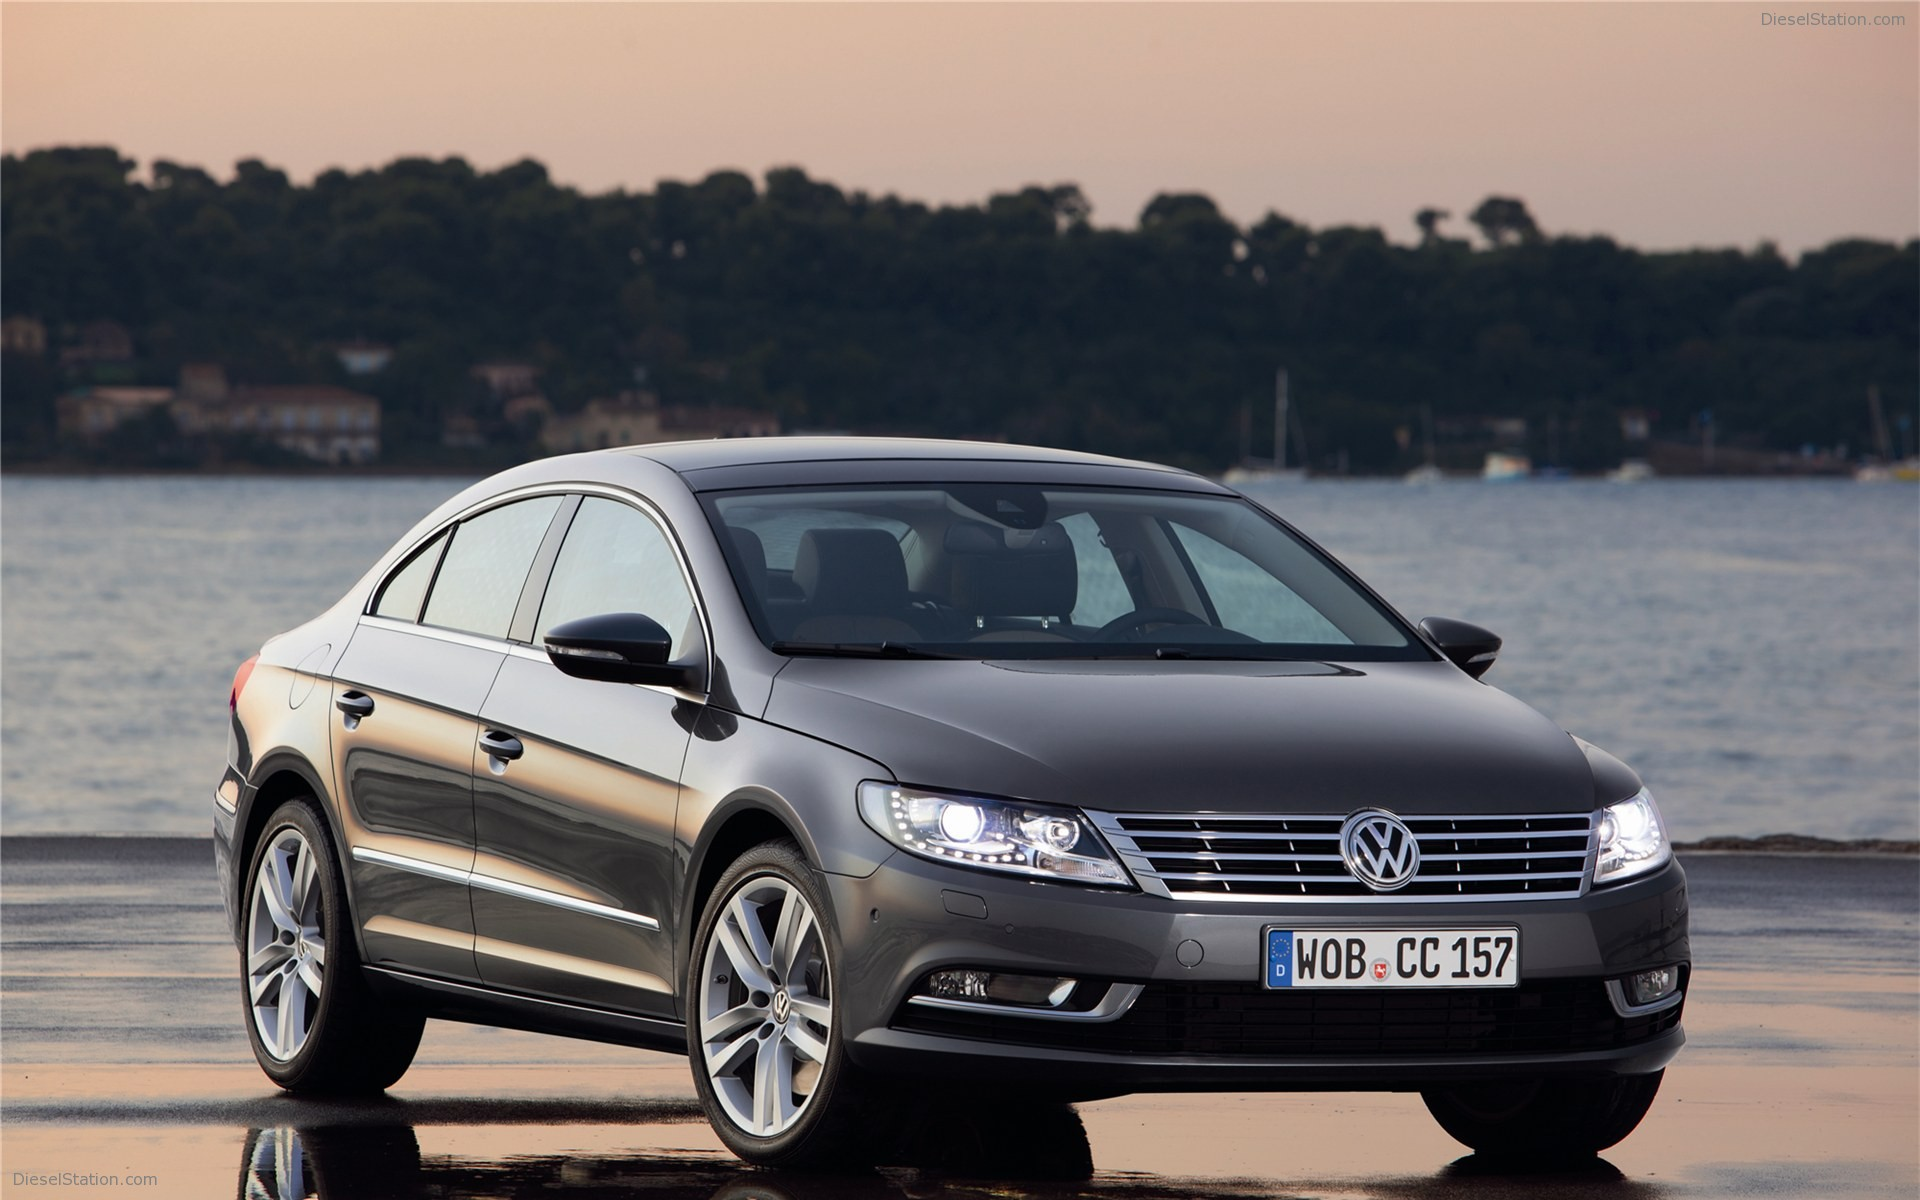 2013 Volkswagen CC photo - 1